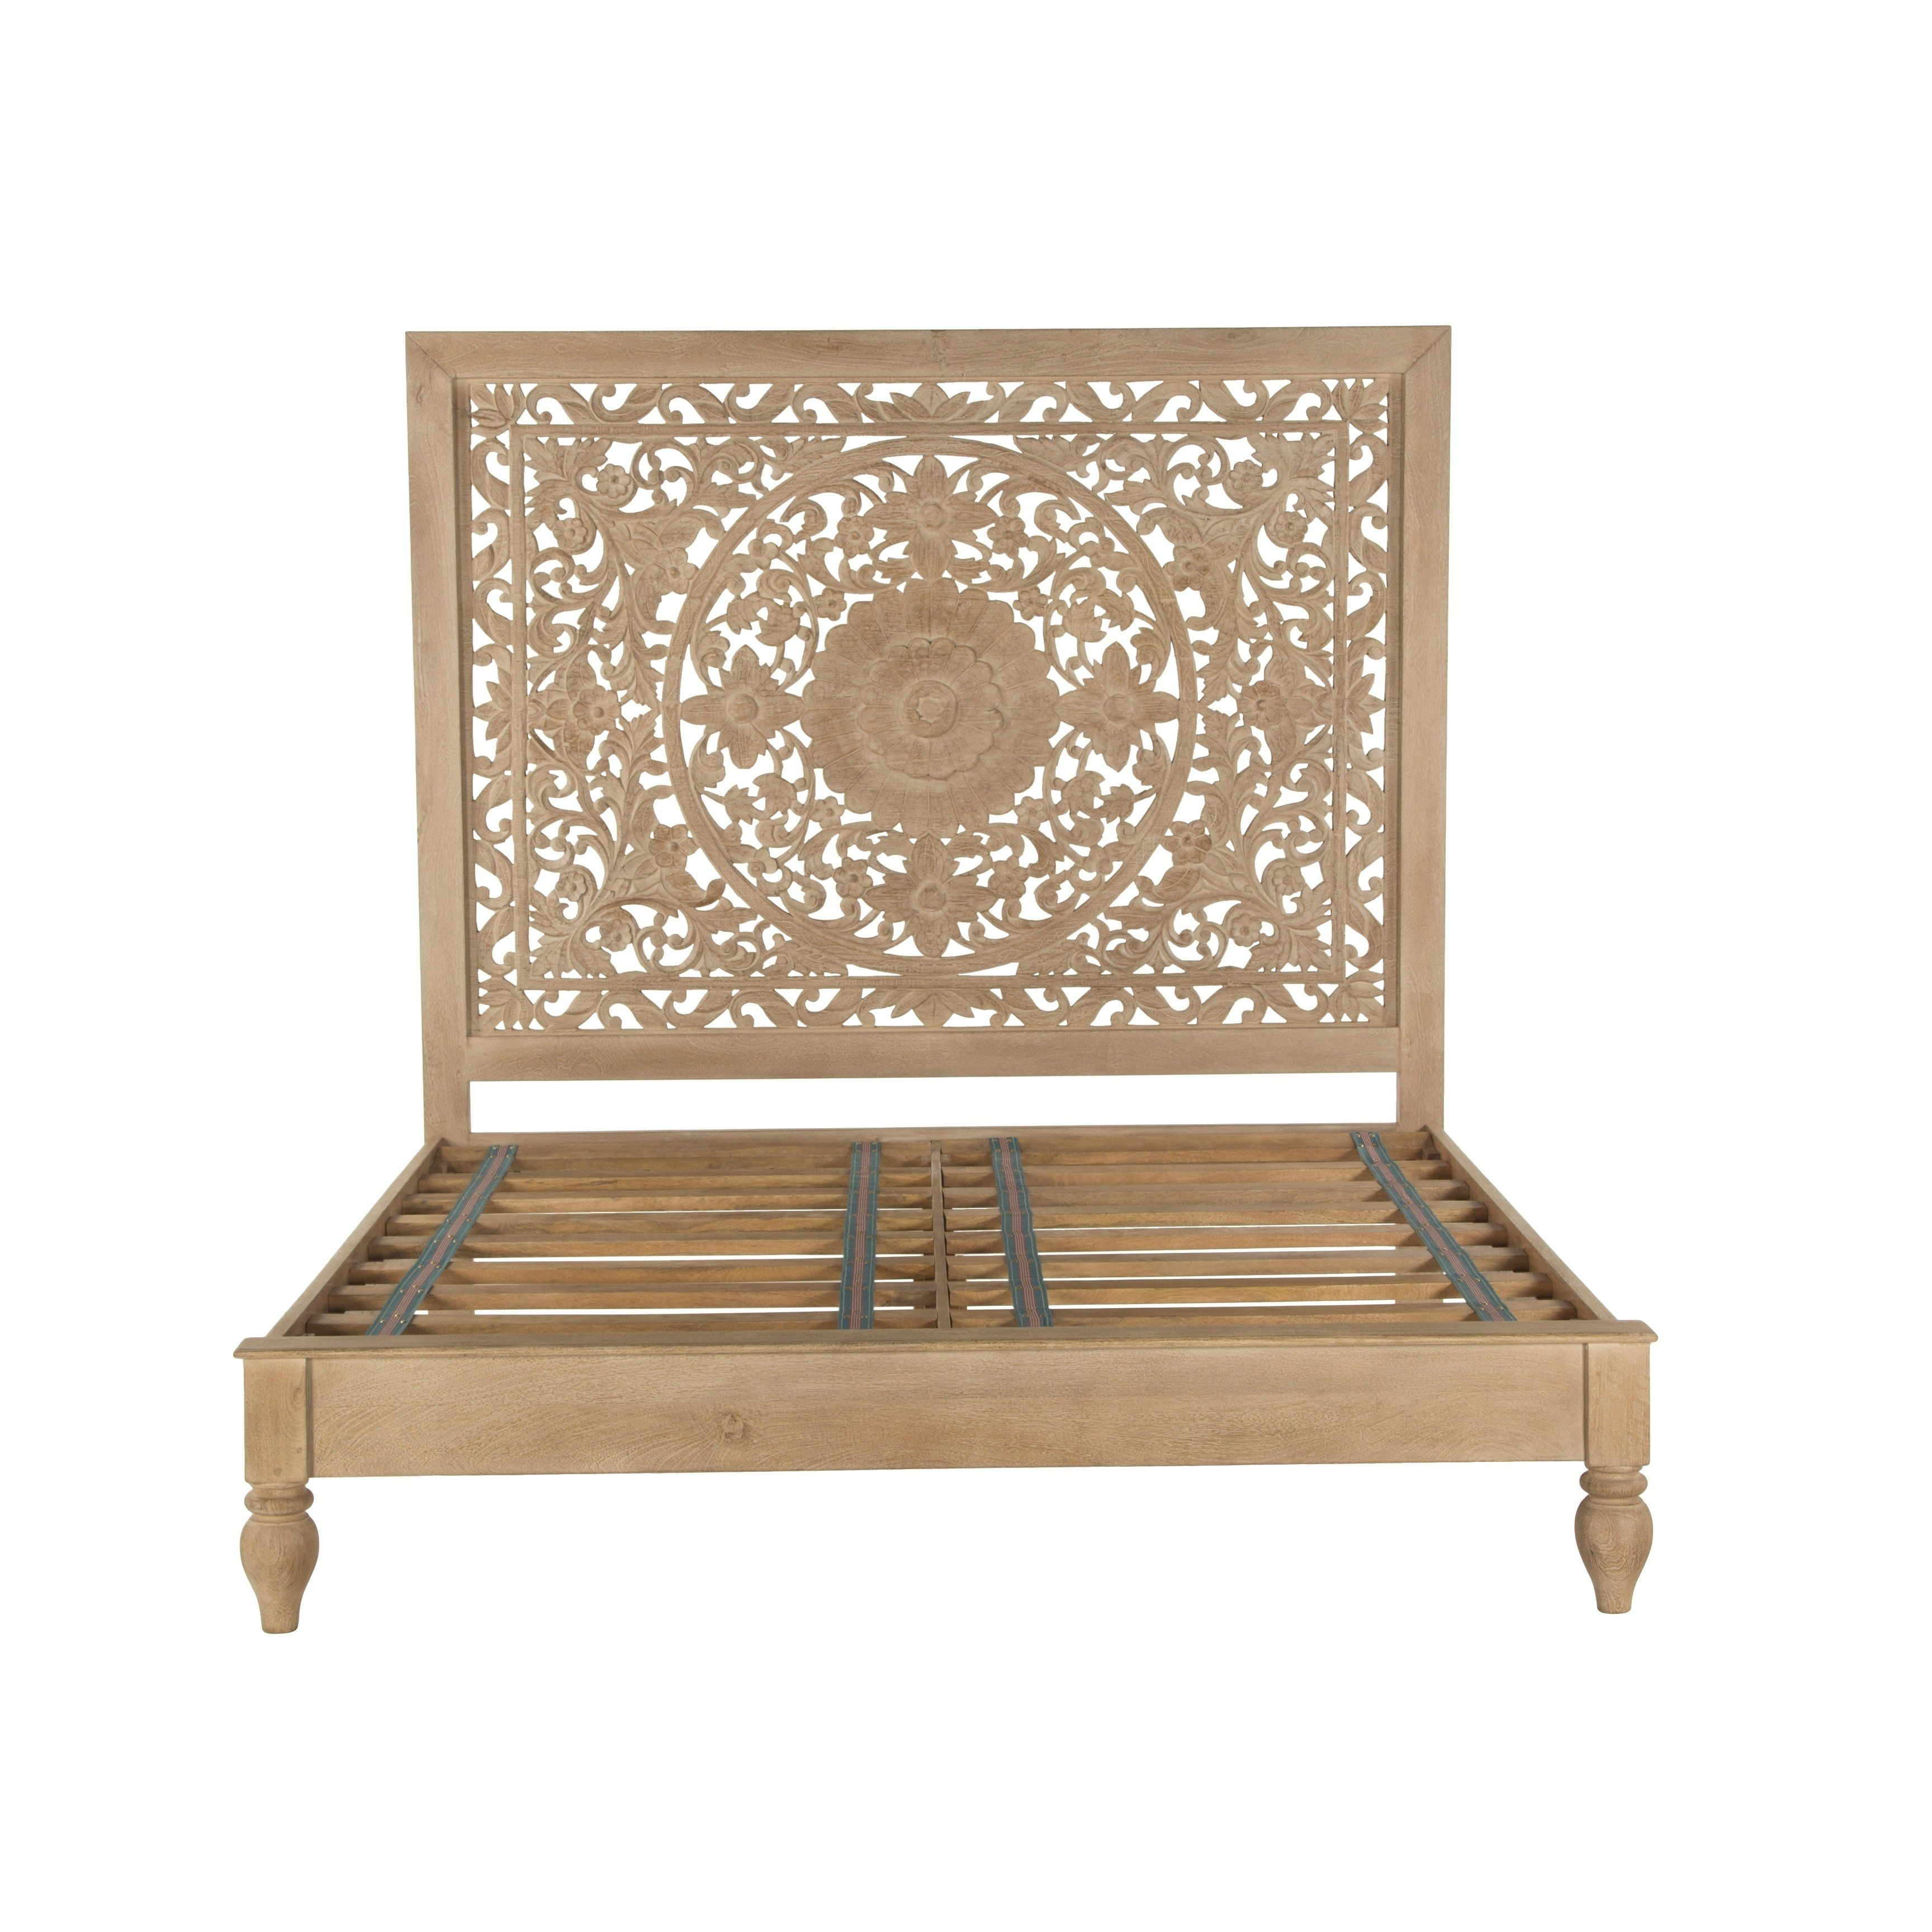 Haveli Whitewash Mango Wood Queen Bed Assembly Required Platform Bed Brown Carved Beds Wood Beds King Bed Frame